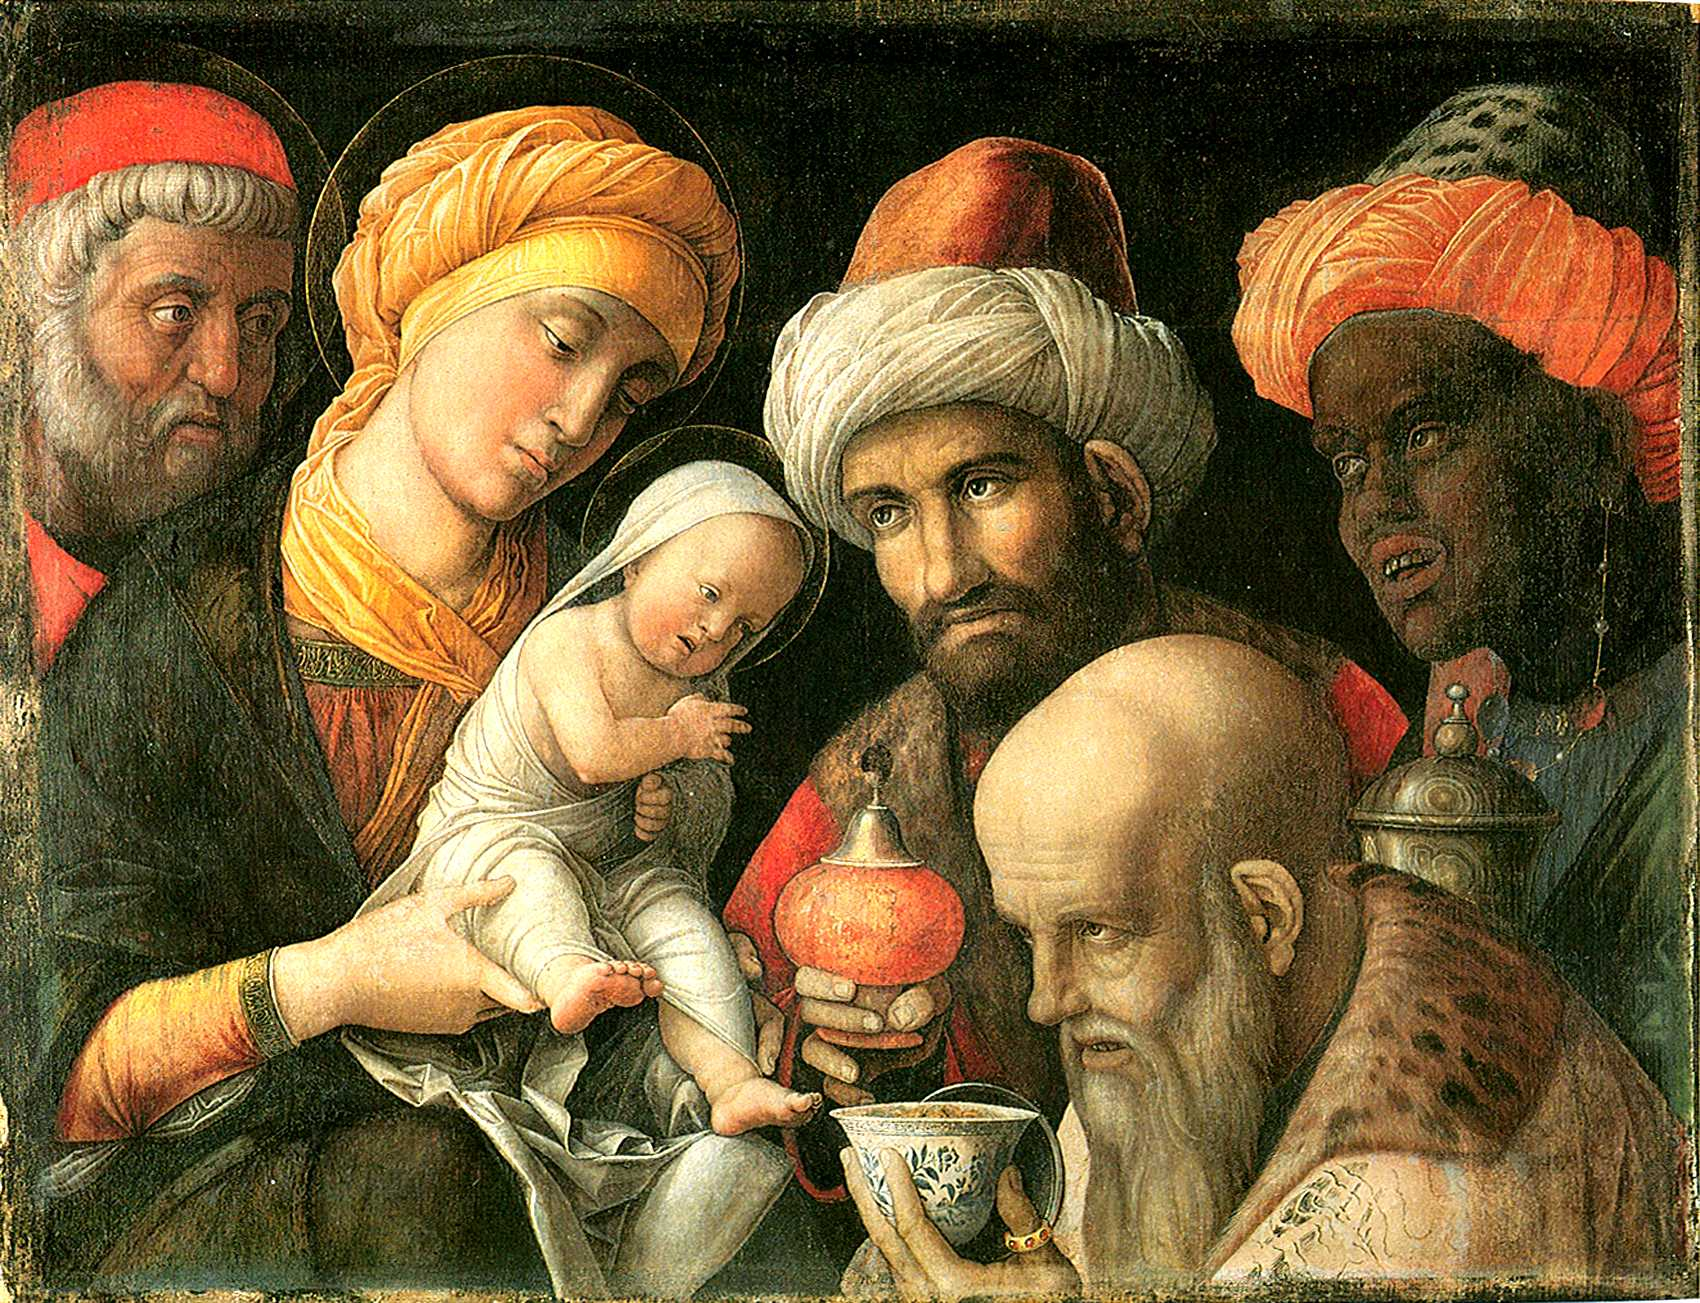 Mantegna (Padoue 1431 - Mantoue 1506), Los Angeles, Paul Getty museum